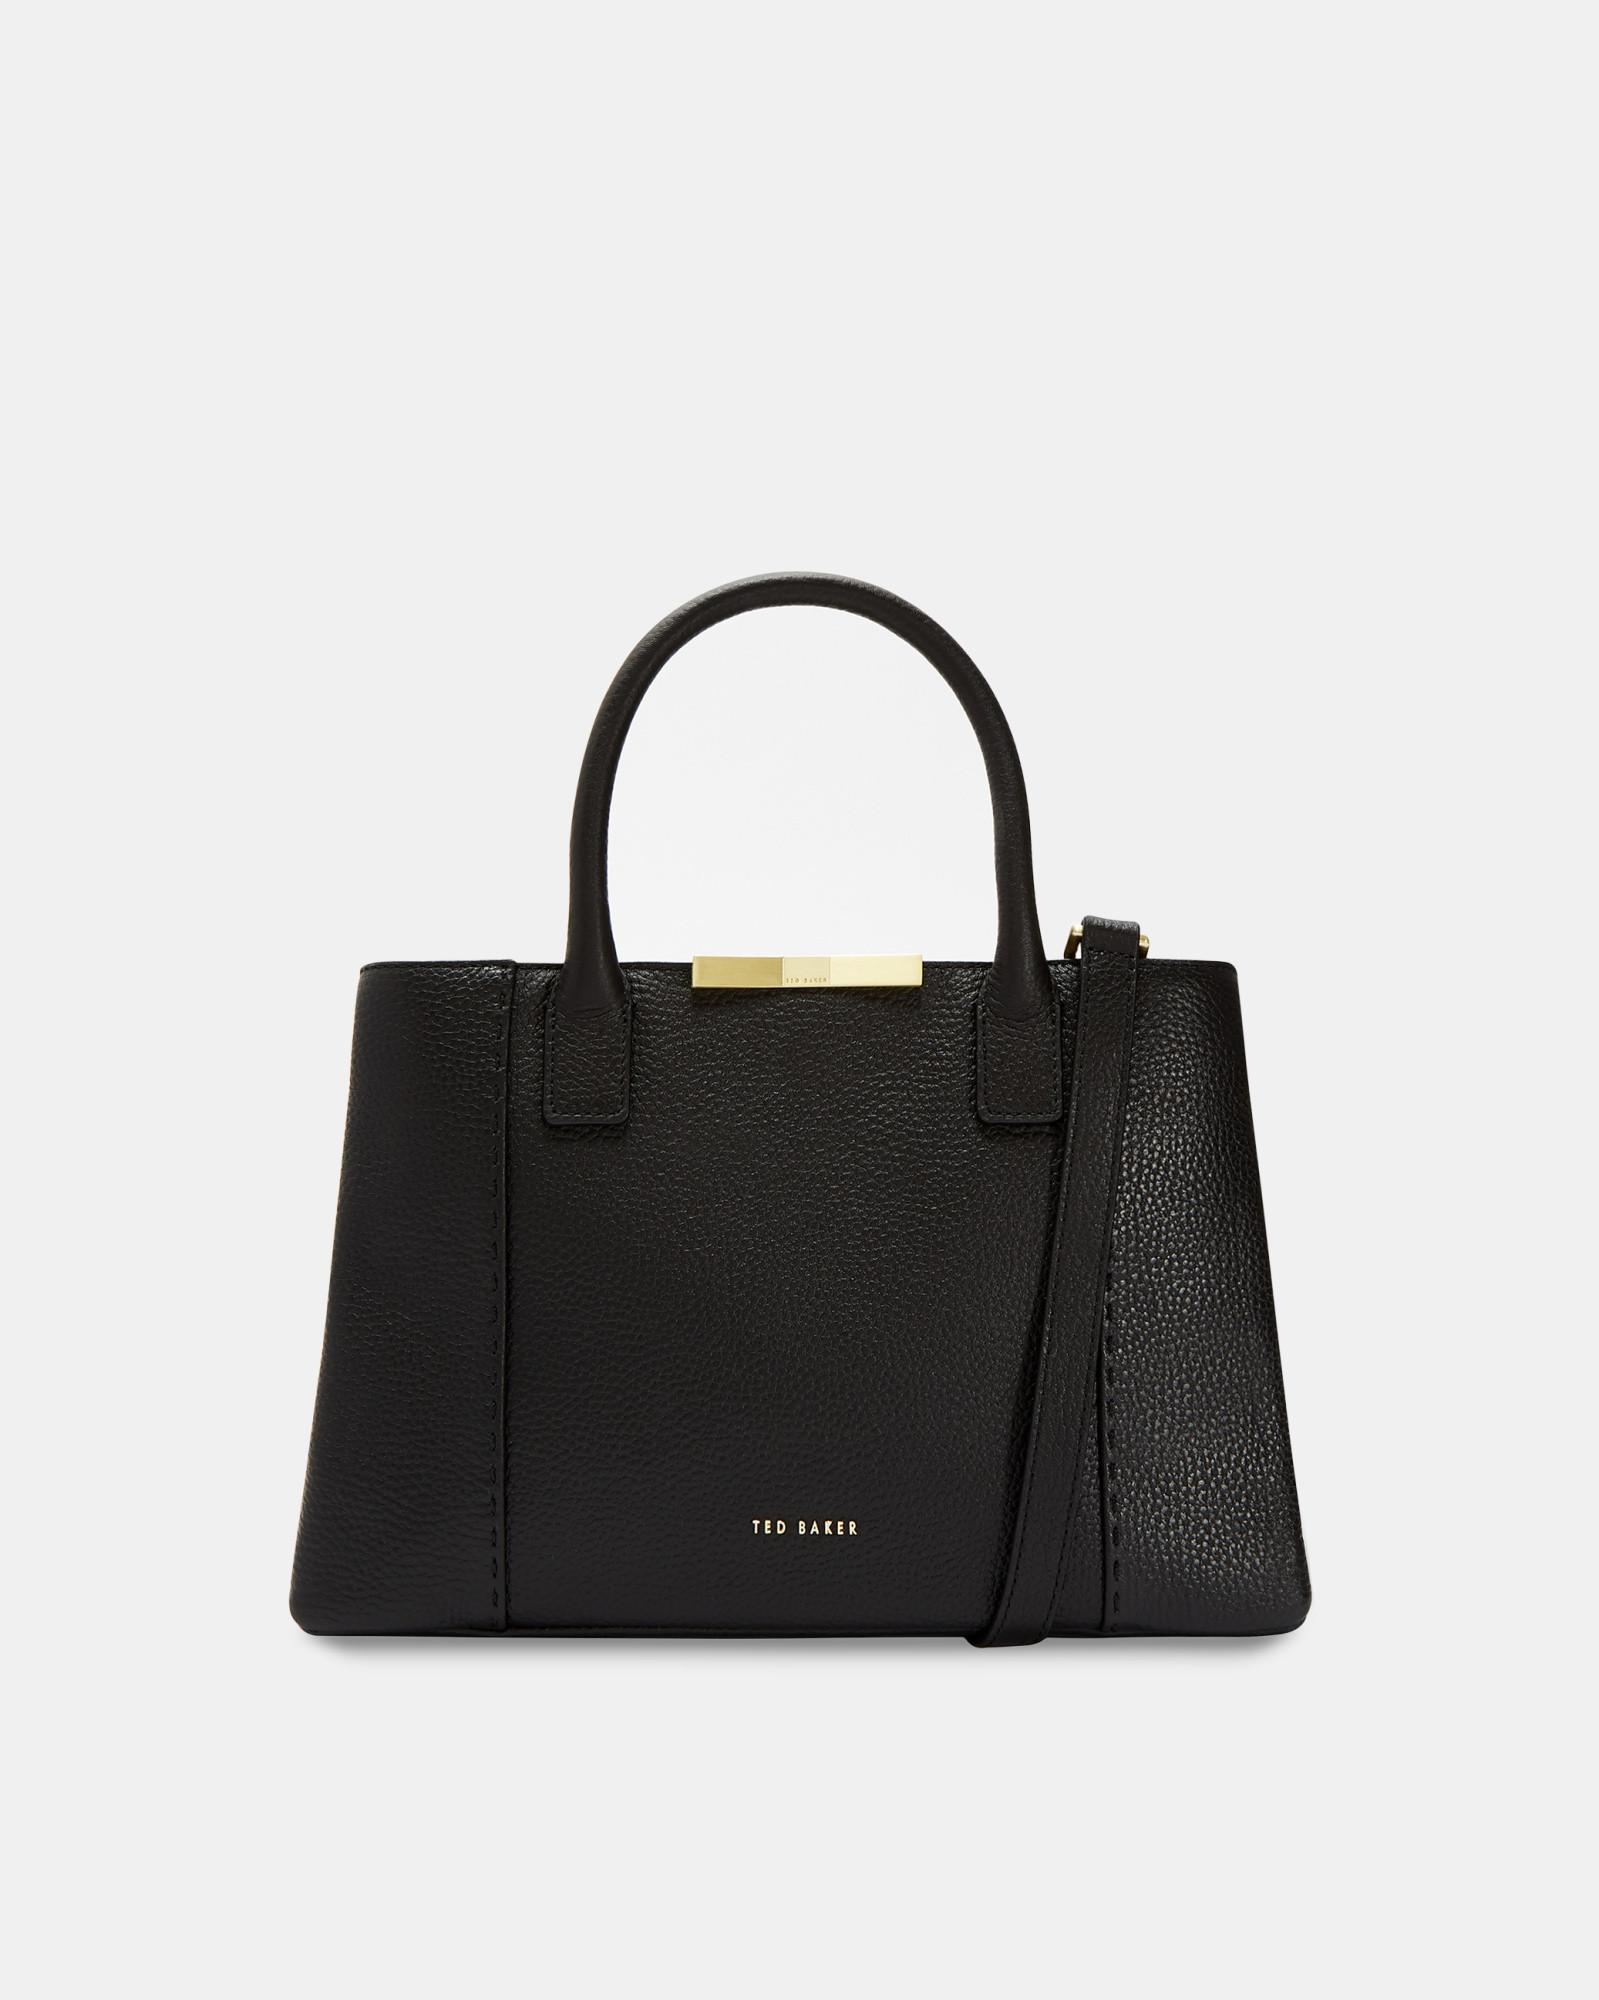 f44f9e7571 Ted Baker Soft Leather Small Tote Bag in Black - Lyst